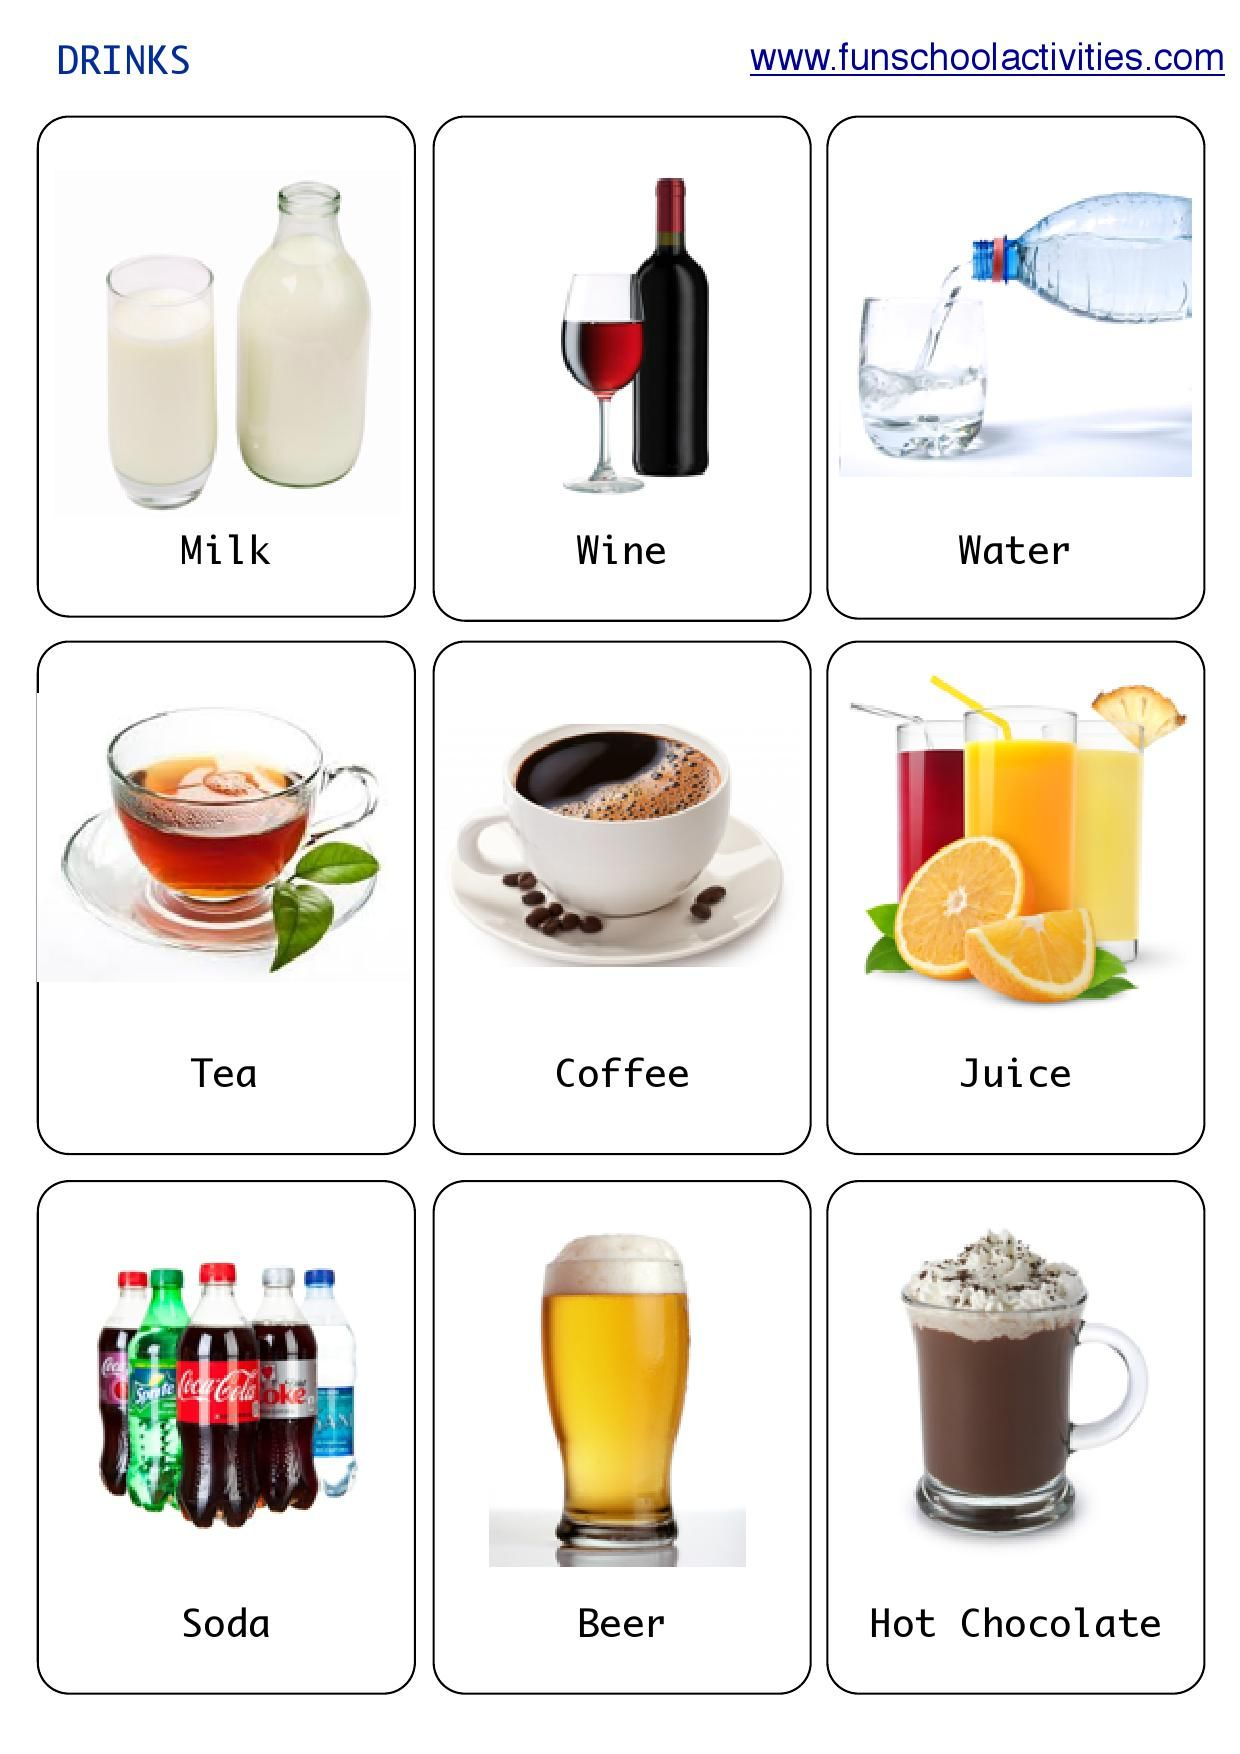 Printable Drinks flashcards